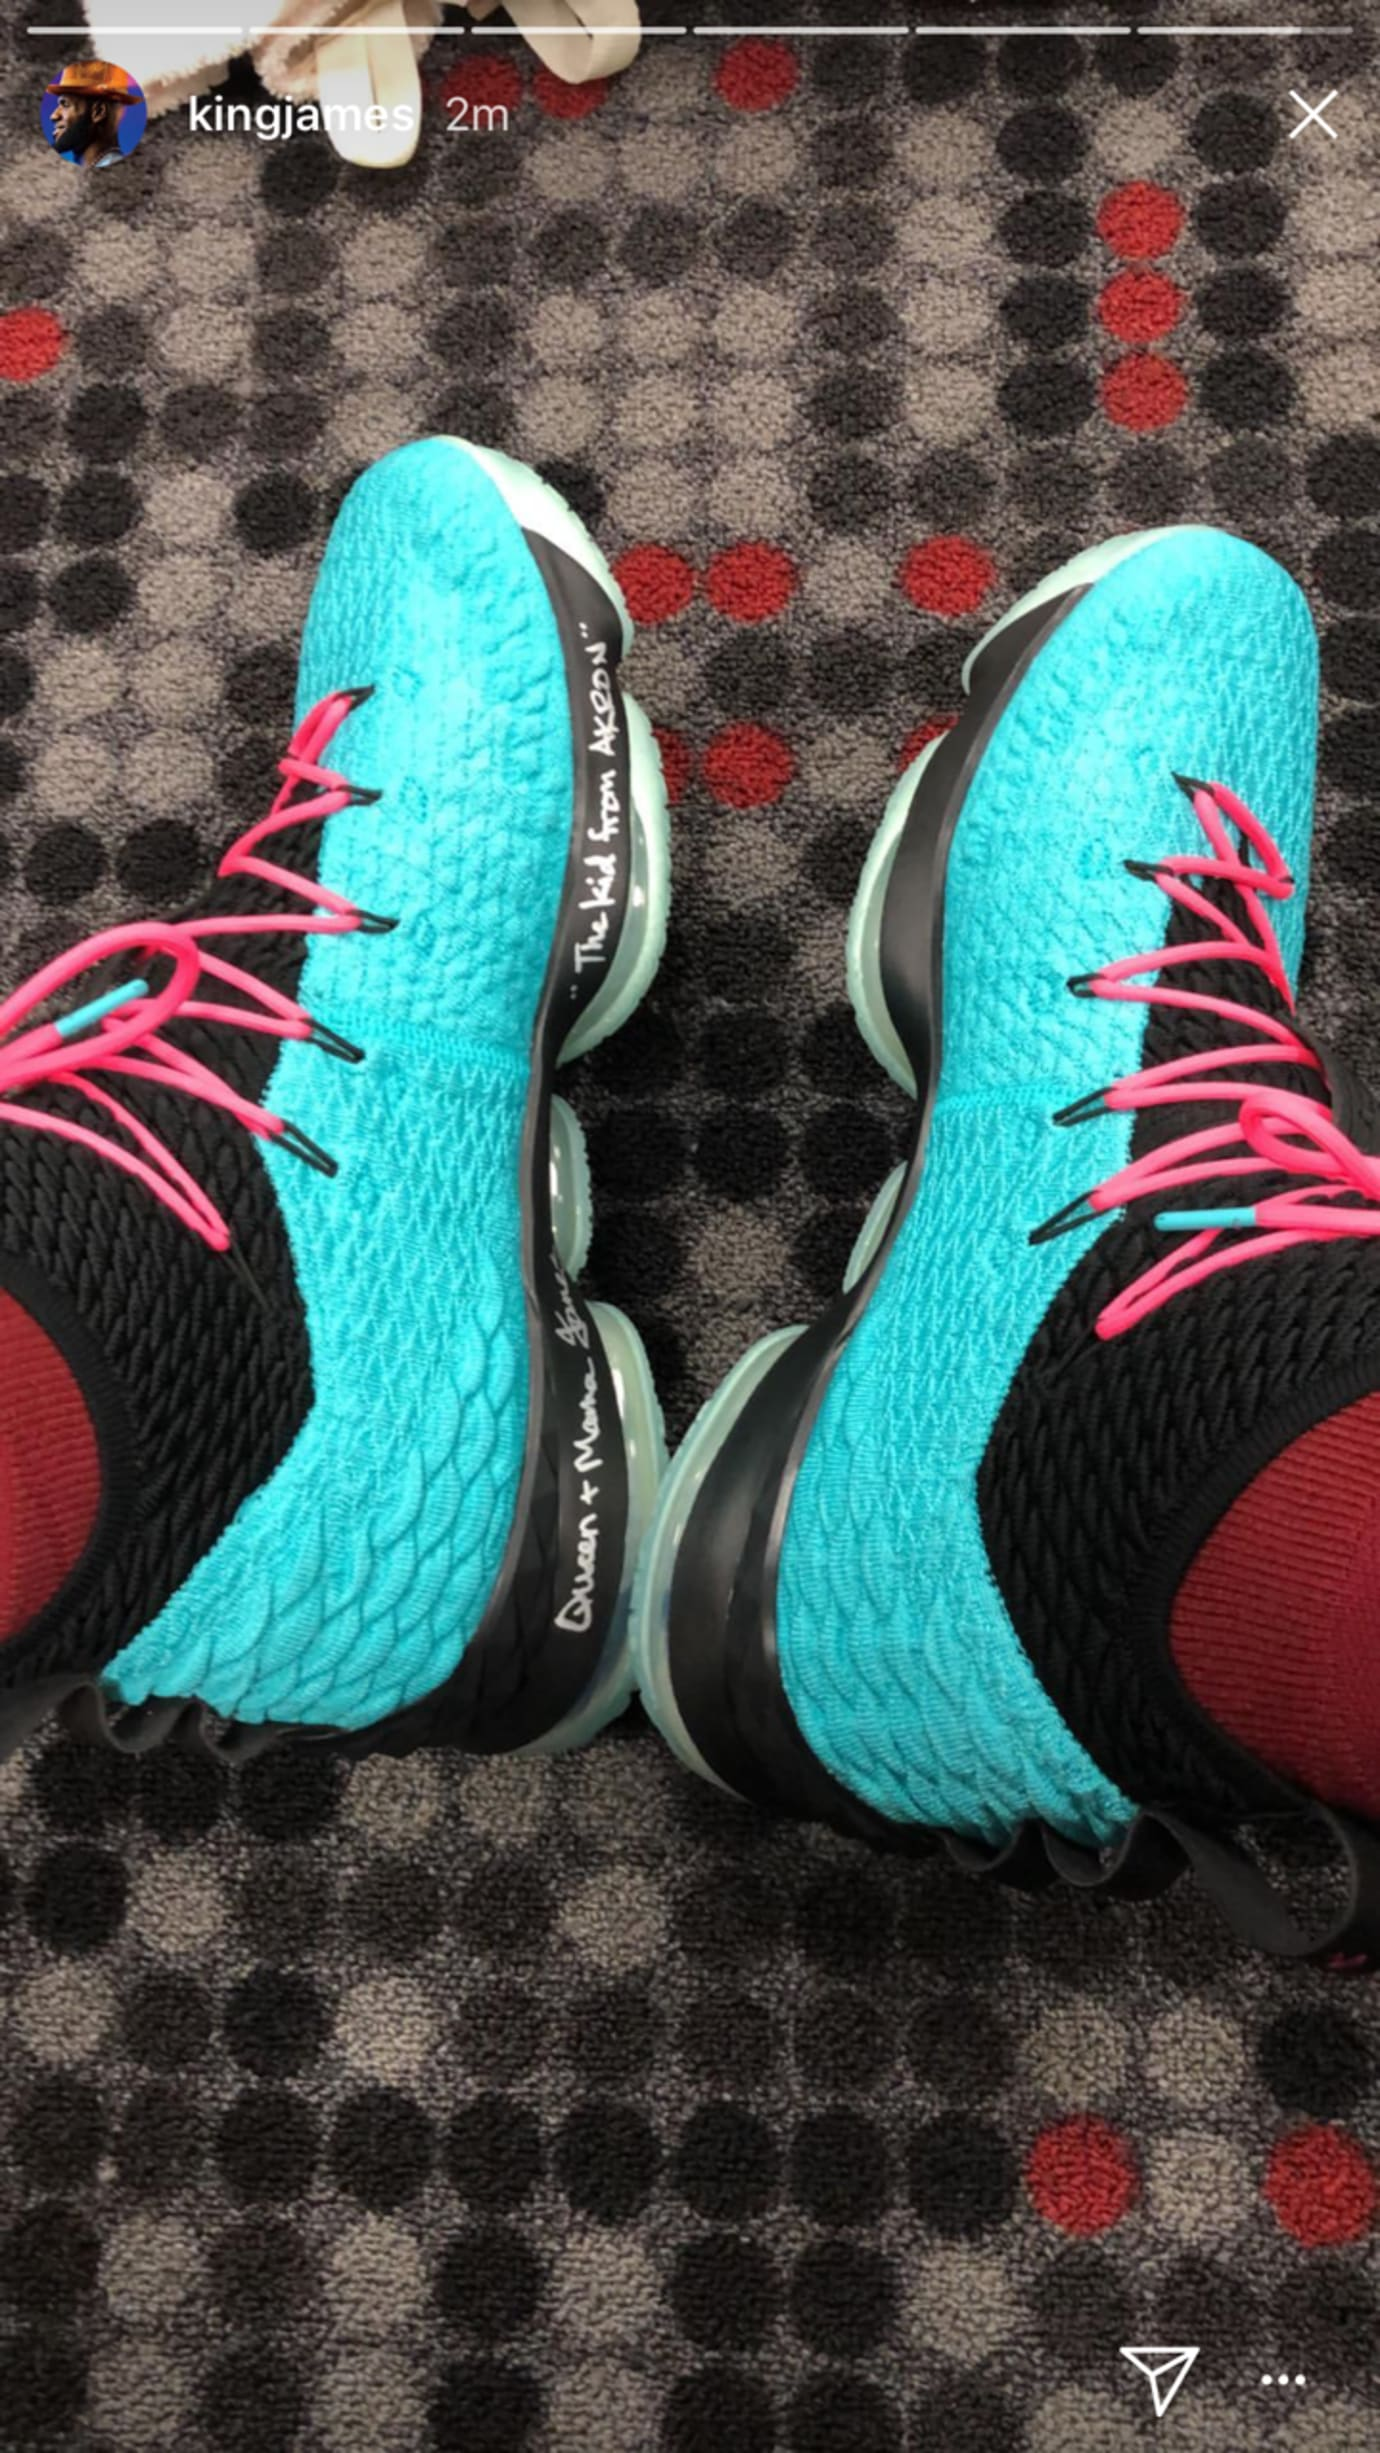 b54cf5bc414c2 Image via kingjames · Nike LeBron 15  South Beach  2